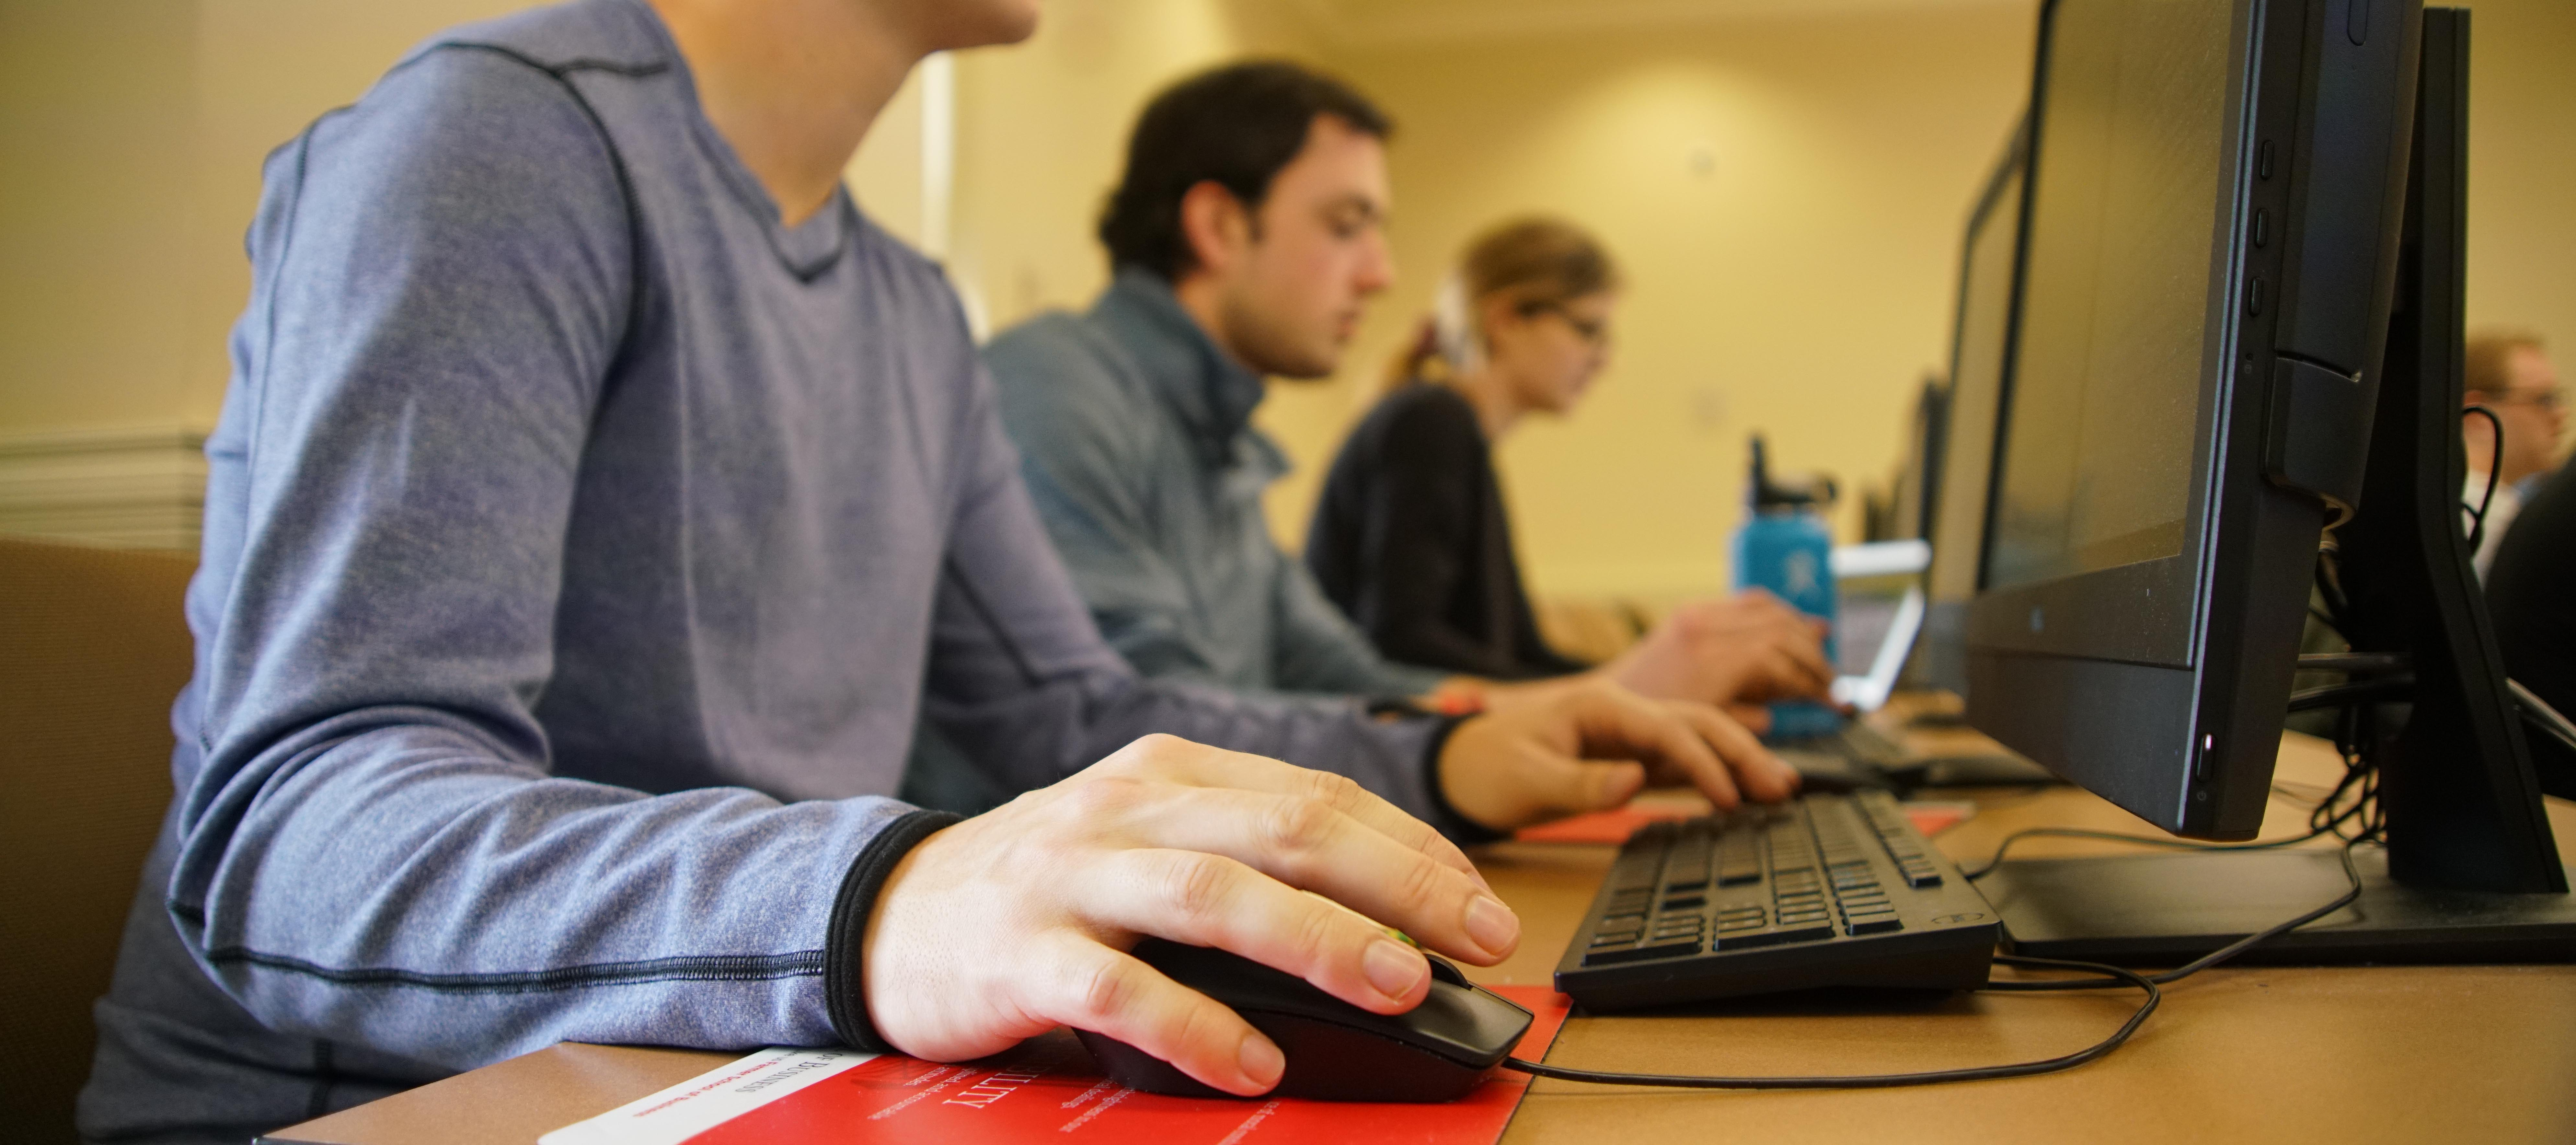 Hand and mouse in focus, people blurred behind it in classroom